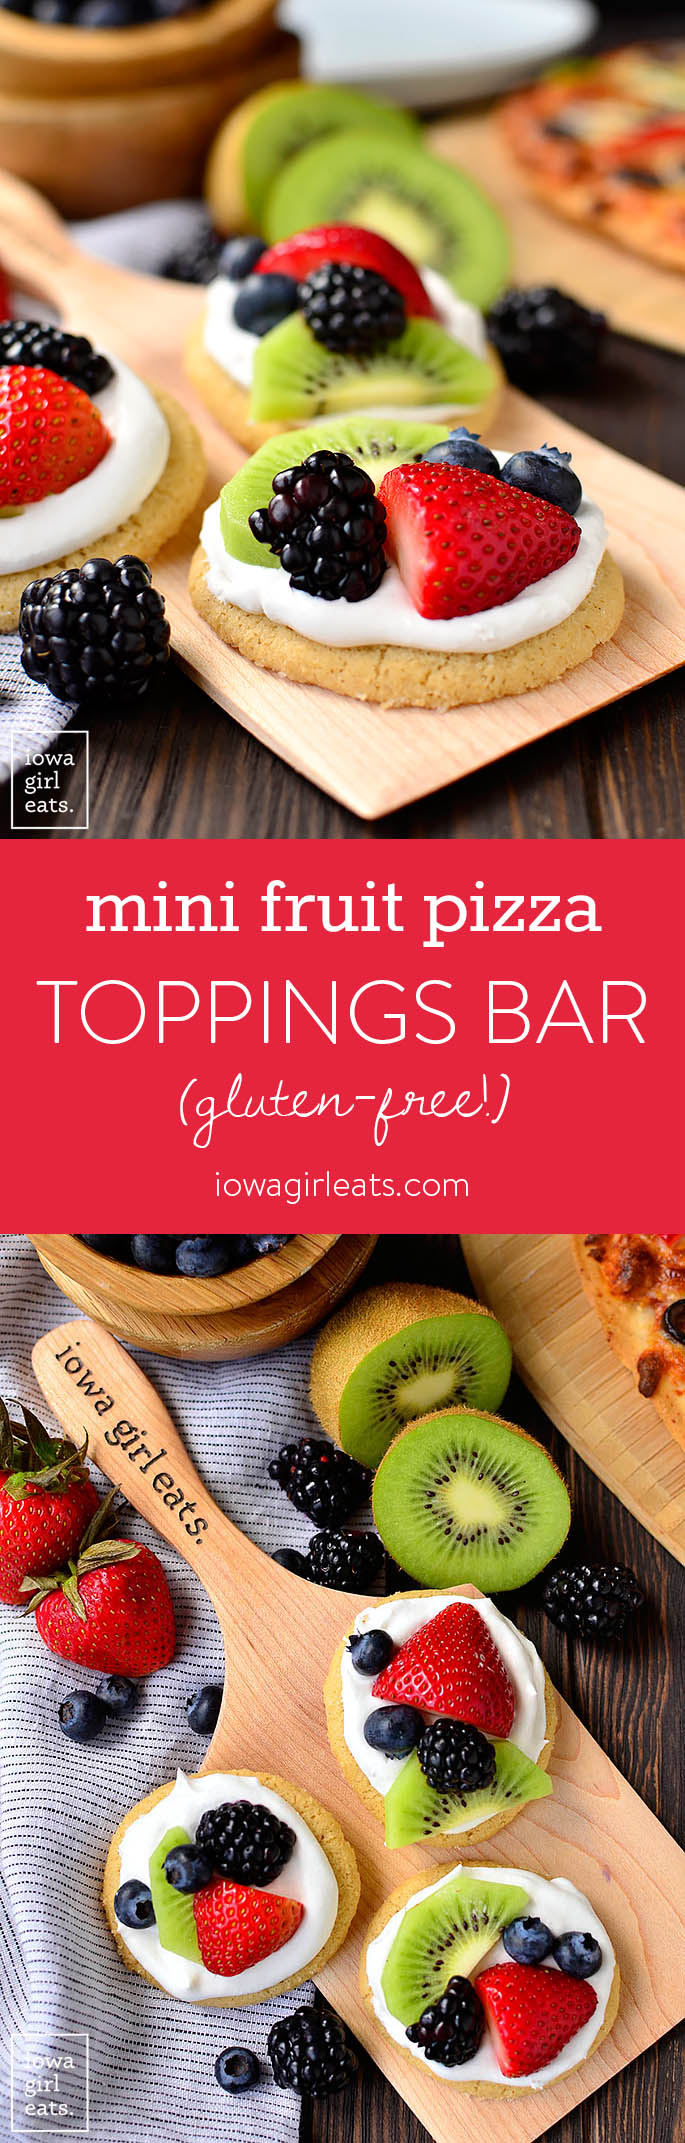 Customize pizza night with Mini Fruit Pizzas plus a DIY pizza toppings bar! This gluten-free dinner and dessert combo is fun, easy, and delicious. | iowagirleats.com